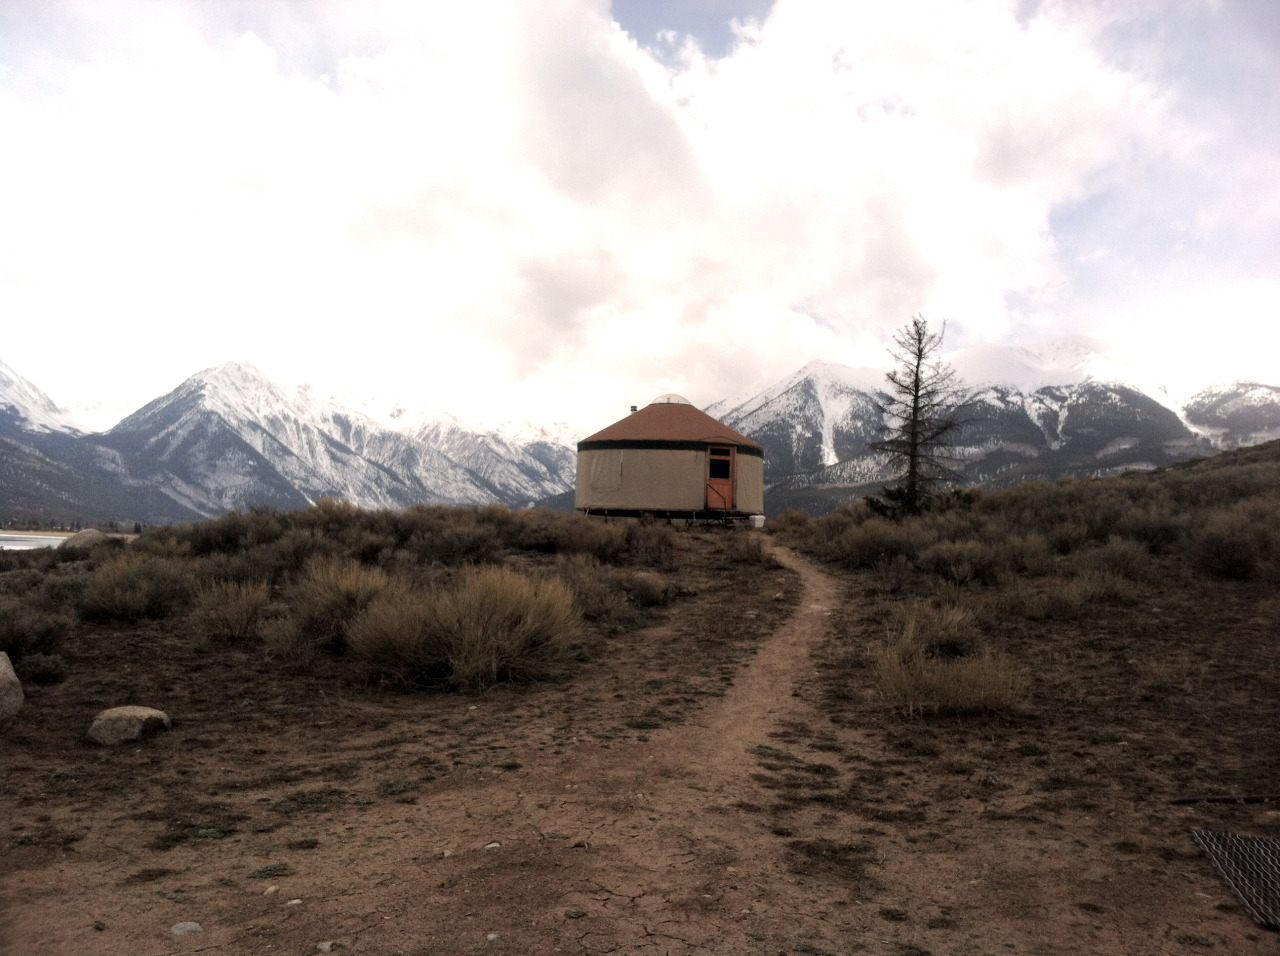 cabinporn:  Yurt across from Mt. Elbert. At 14,400 feet the peak is the highest in the Rocky Mountains and second highest in the contiguous United States. Submitted by Jess Mahanes.